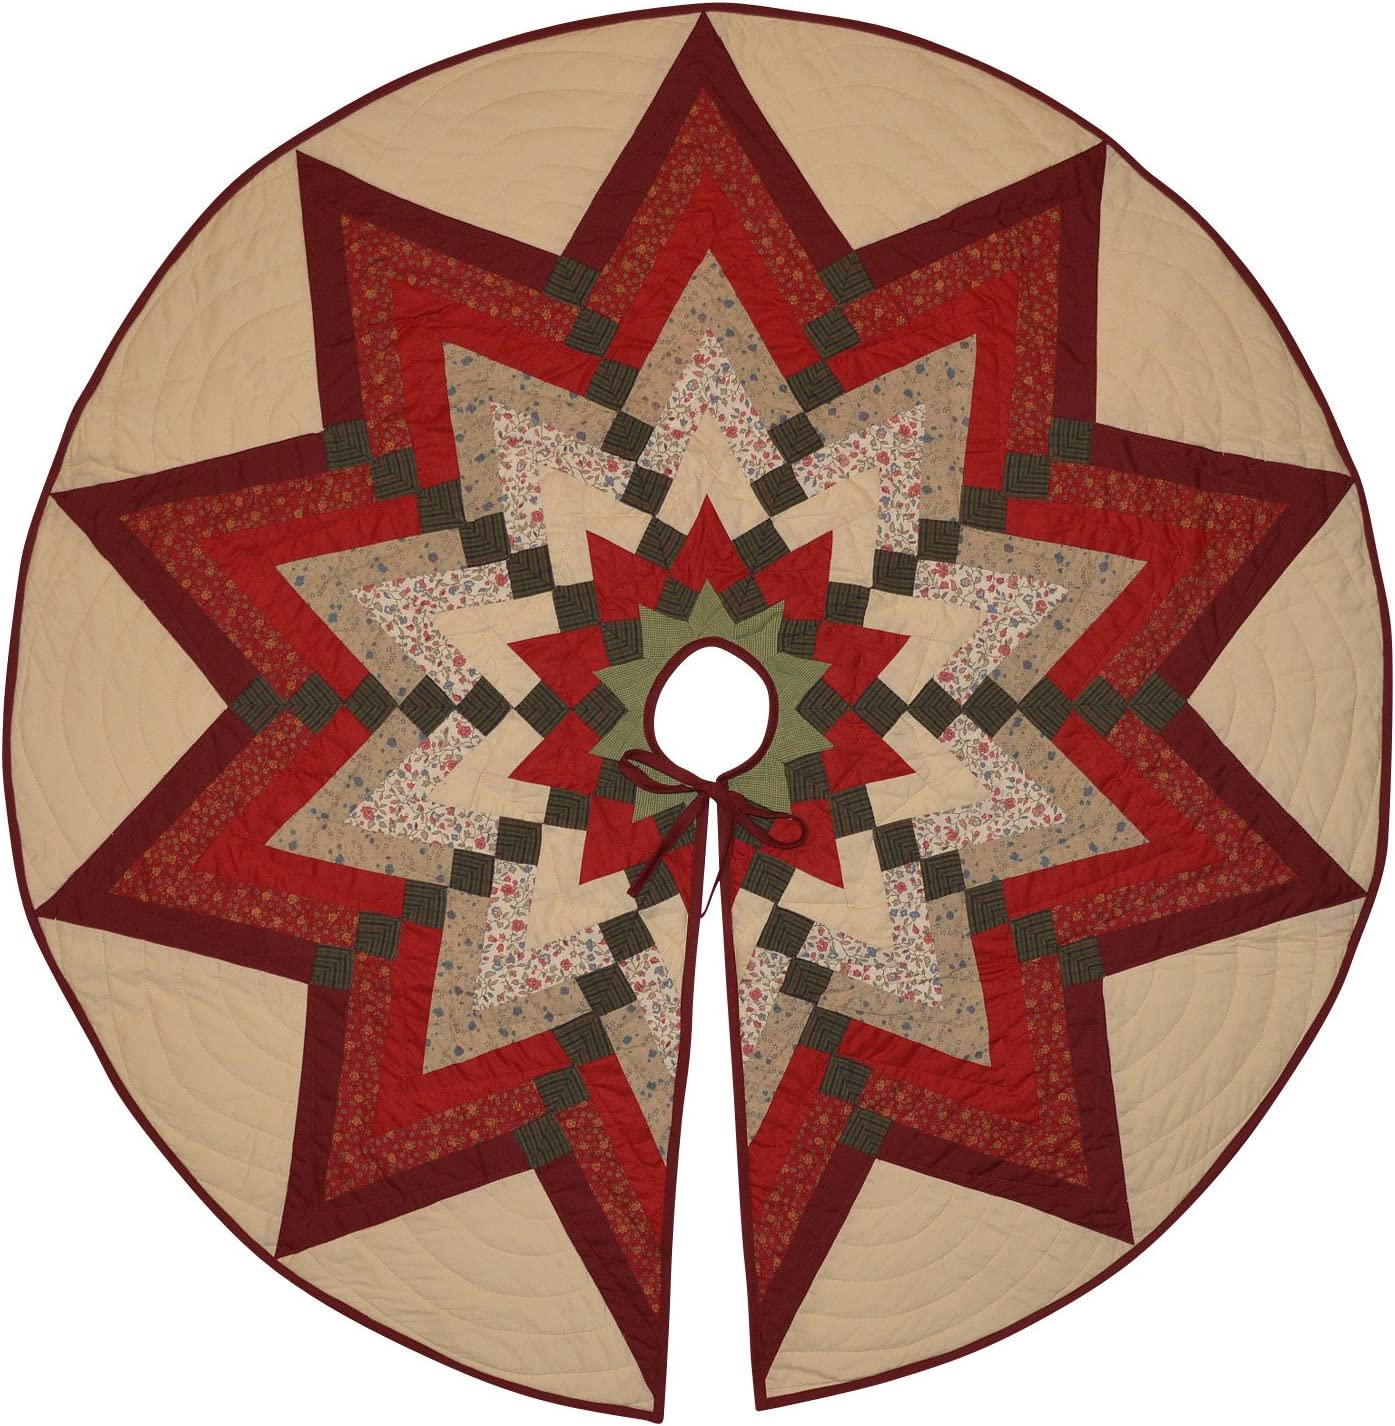 Amazon Com Retro Barn Star Burst Quilted Country Patchwork Christmas Tree Skirt 44 Home Kitchen,Rudolph The Red Nosed Reindeer The Movie Dvd